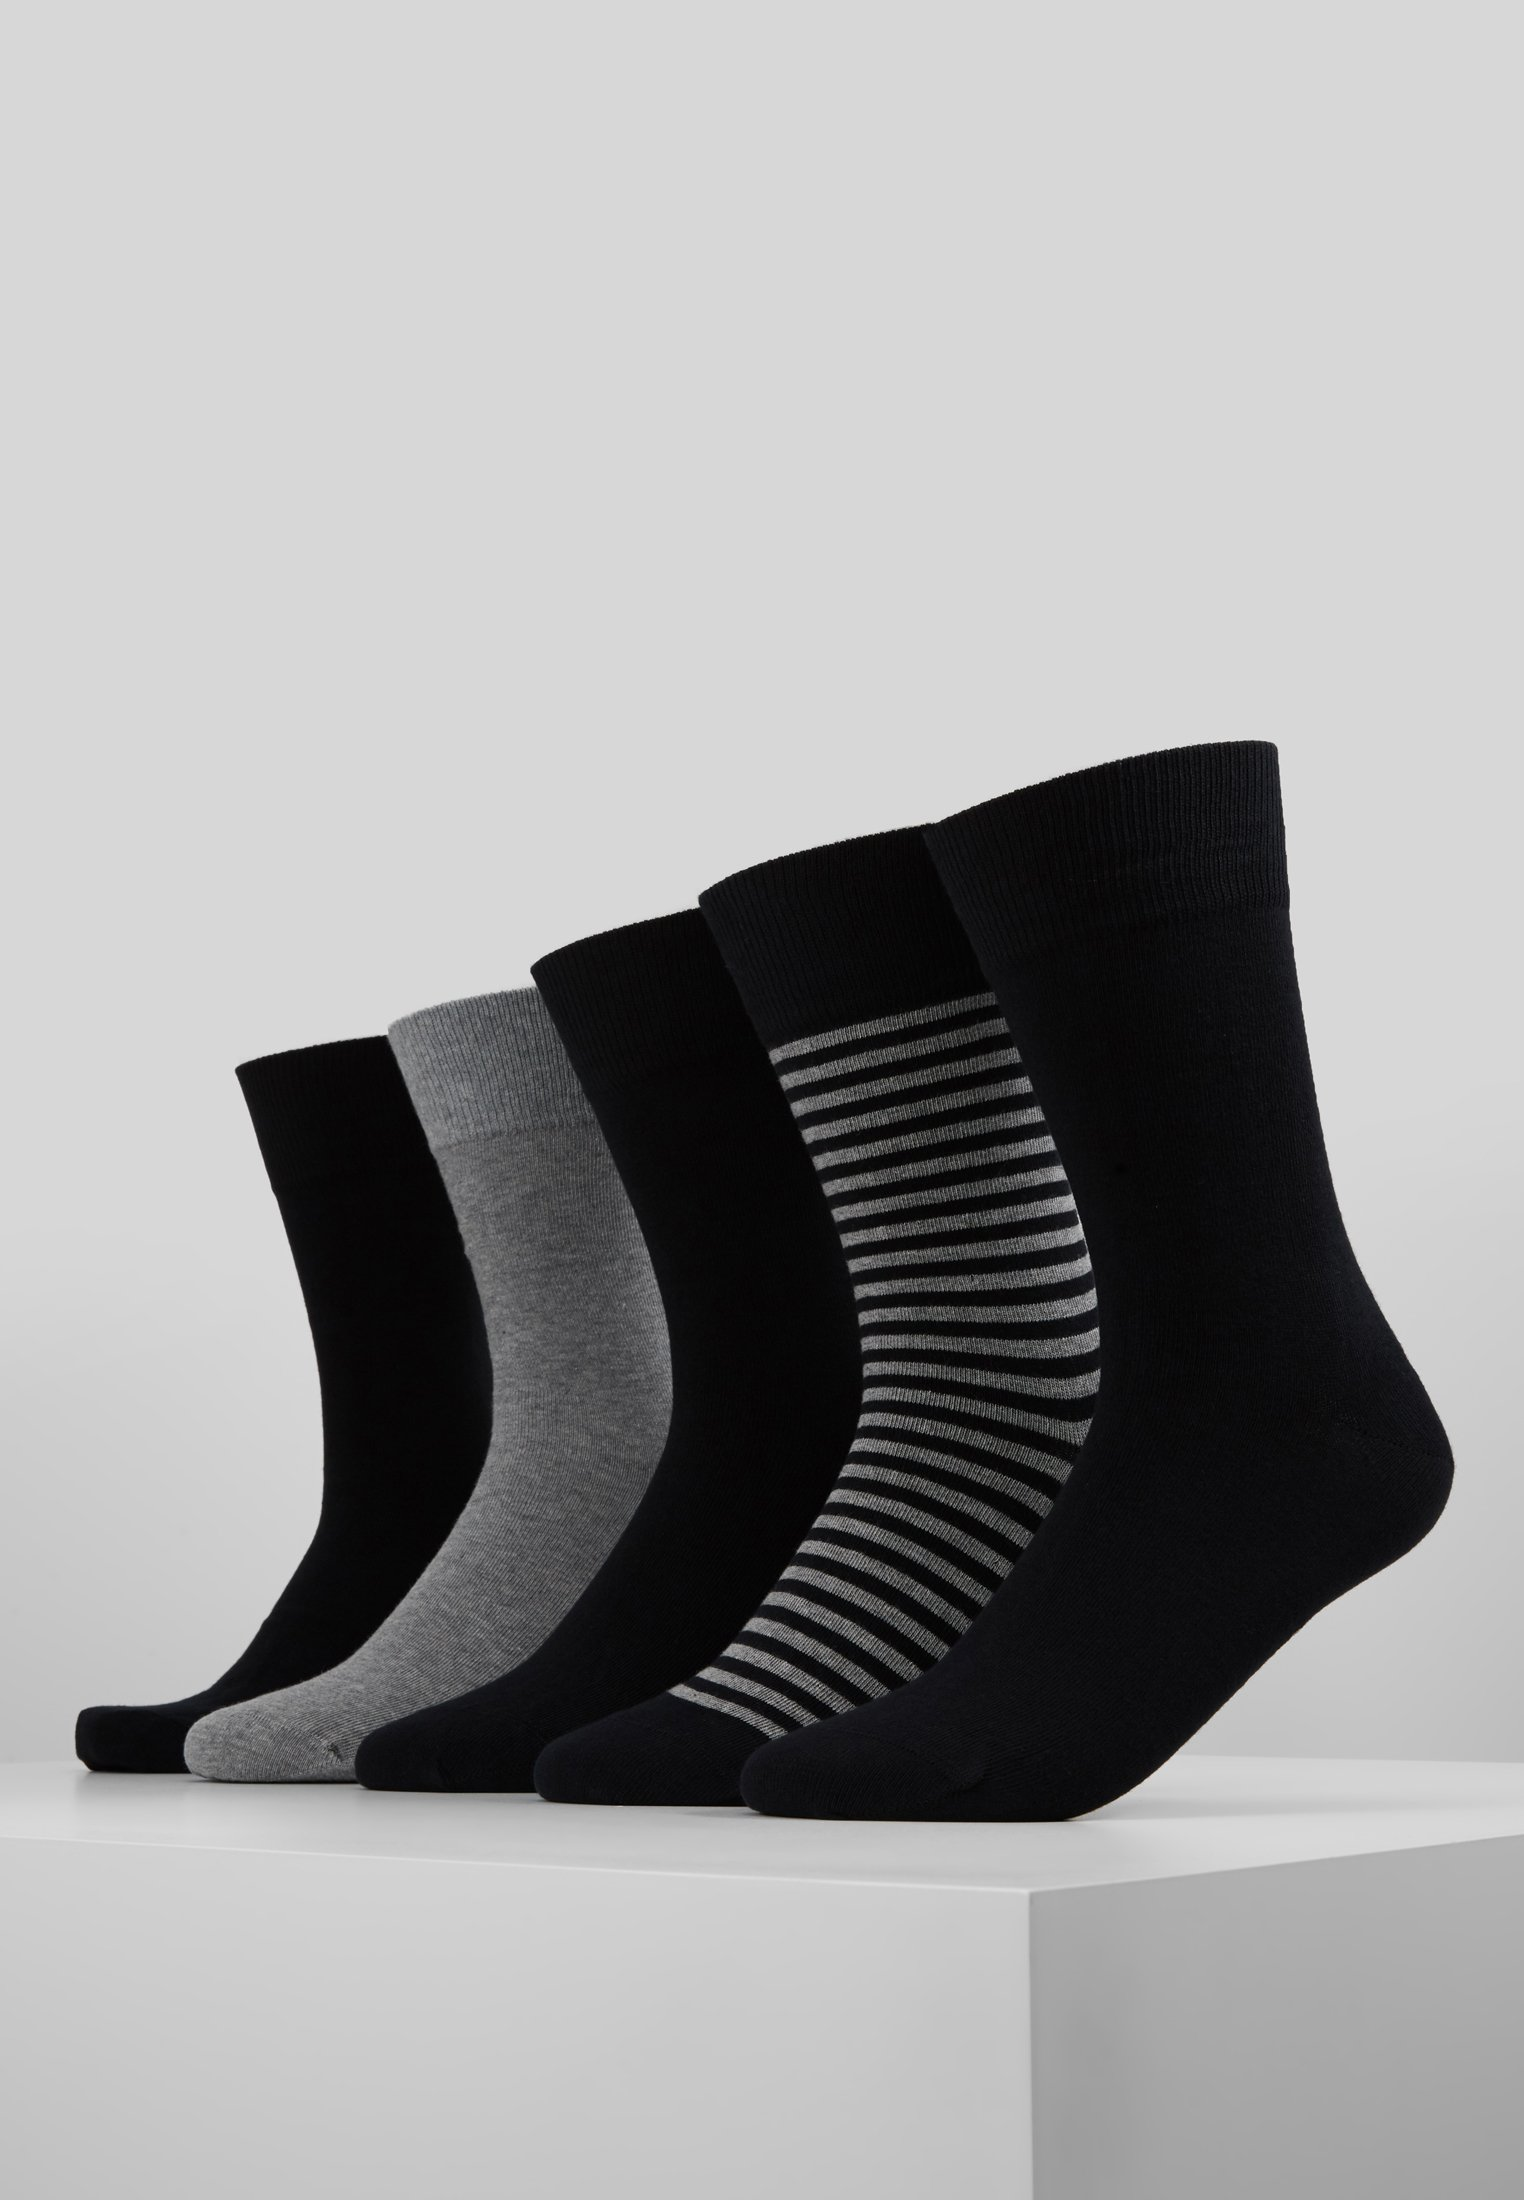 5packChaussettes Fit Schiesser Grey Fit 5packChaussettes Schiesser Schiesser 5packChaussettes Fit Grey Fit Grey Schiesser vbyY7gIf6